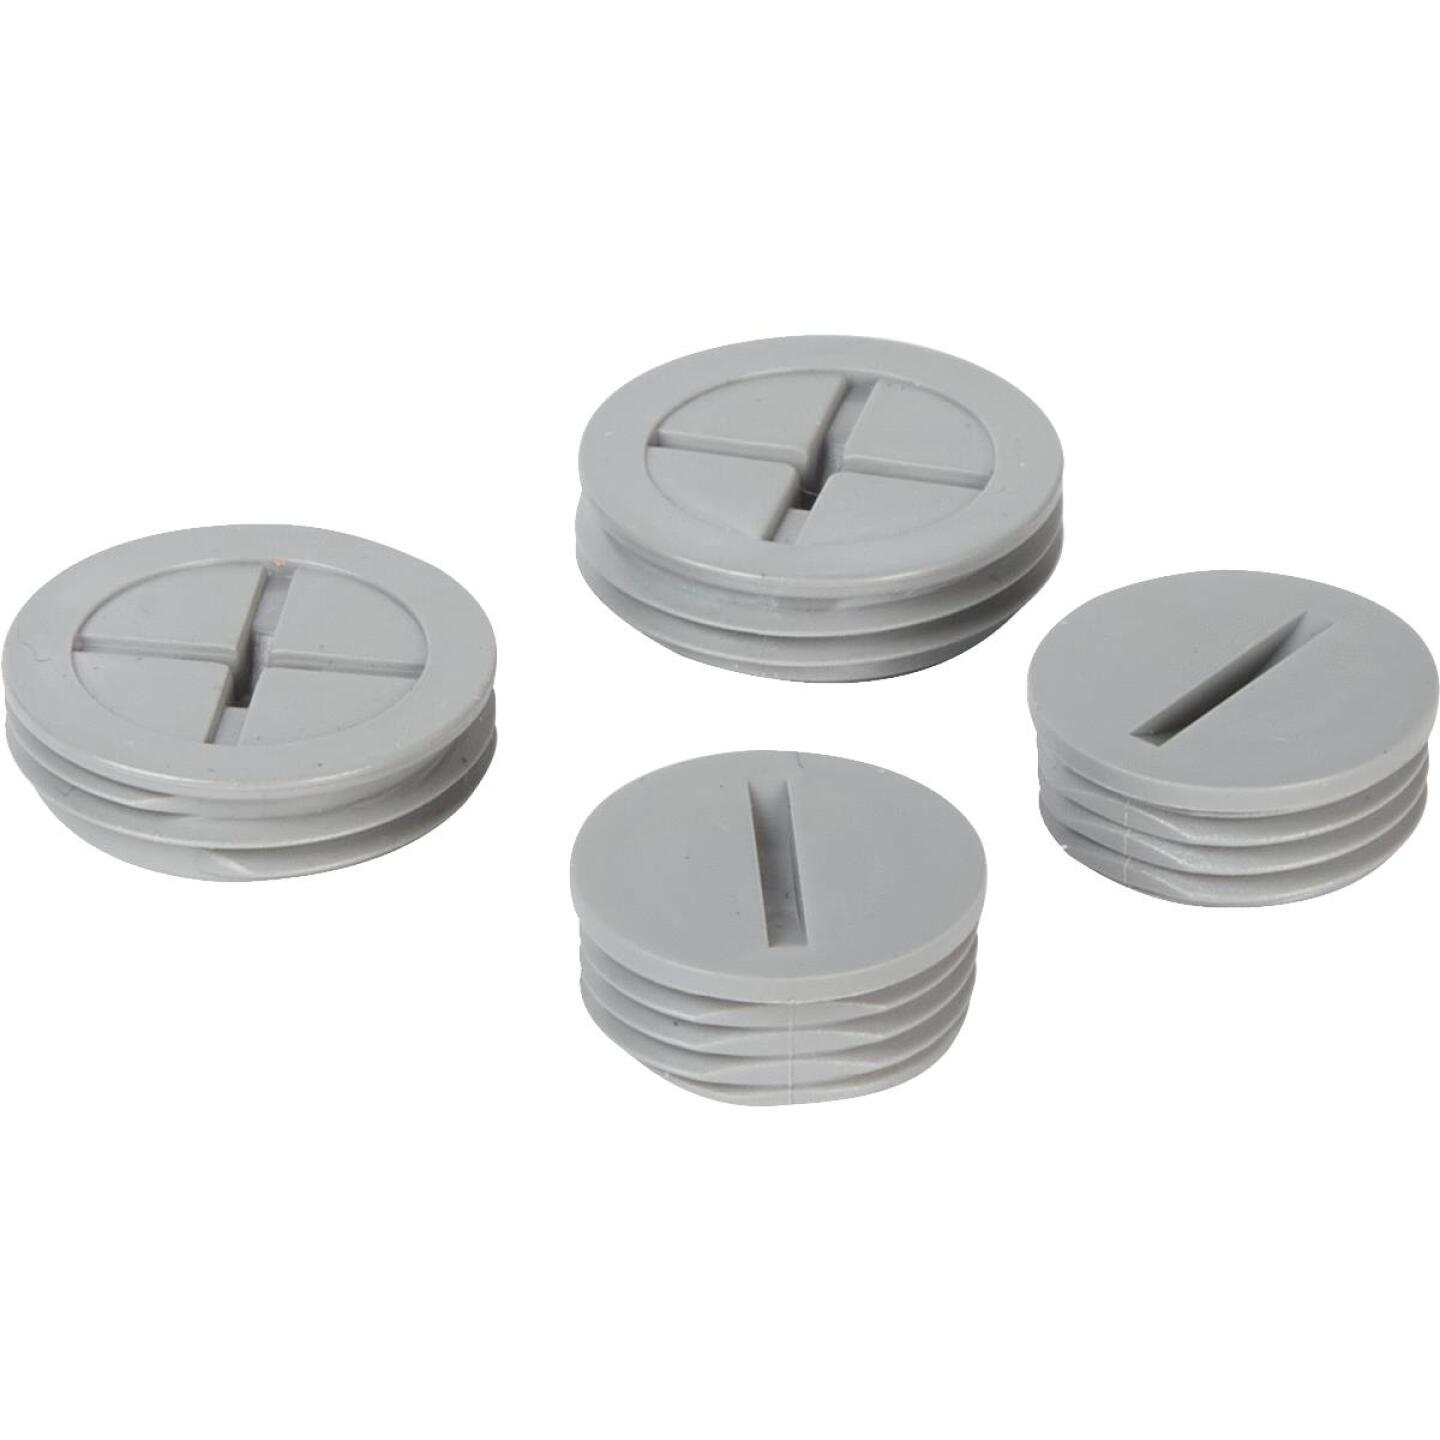 TayMac 1/2 In, 3/4 In. Weatherproof Gray Outdoor Closure Plug (4-Pack) Image 3